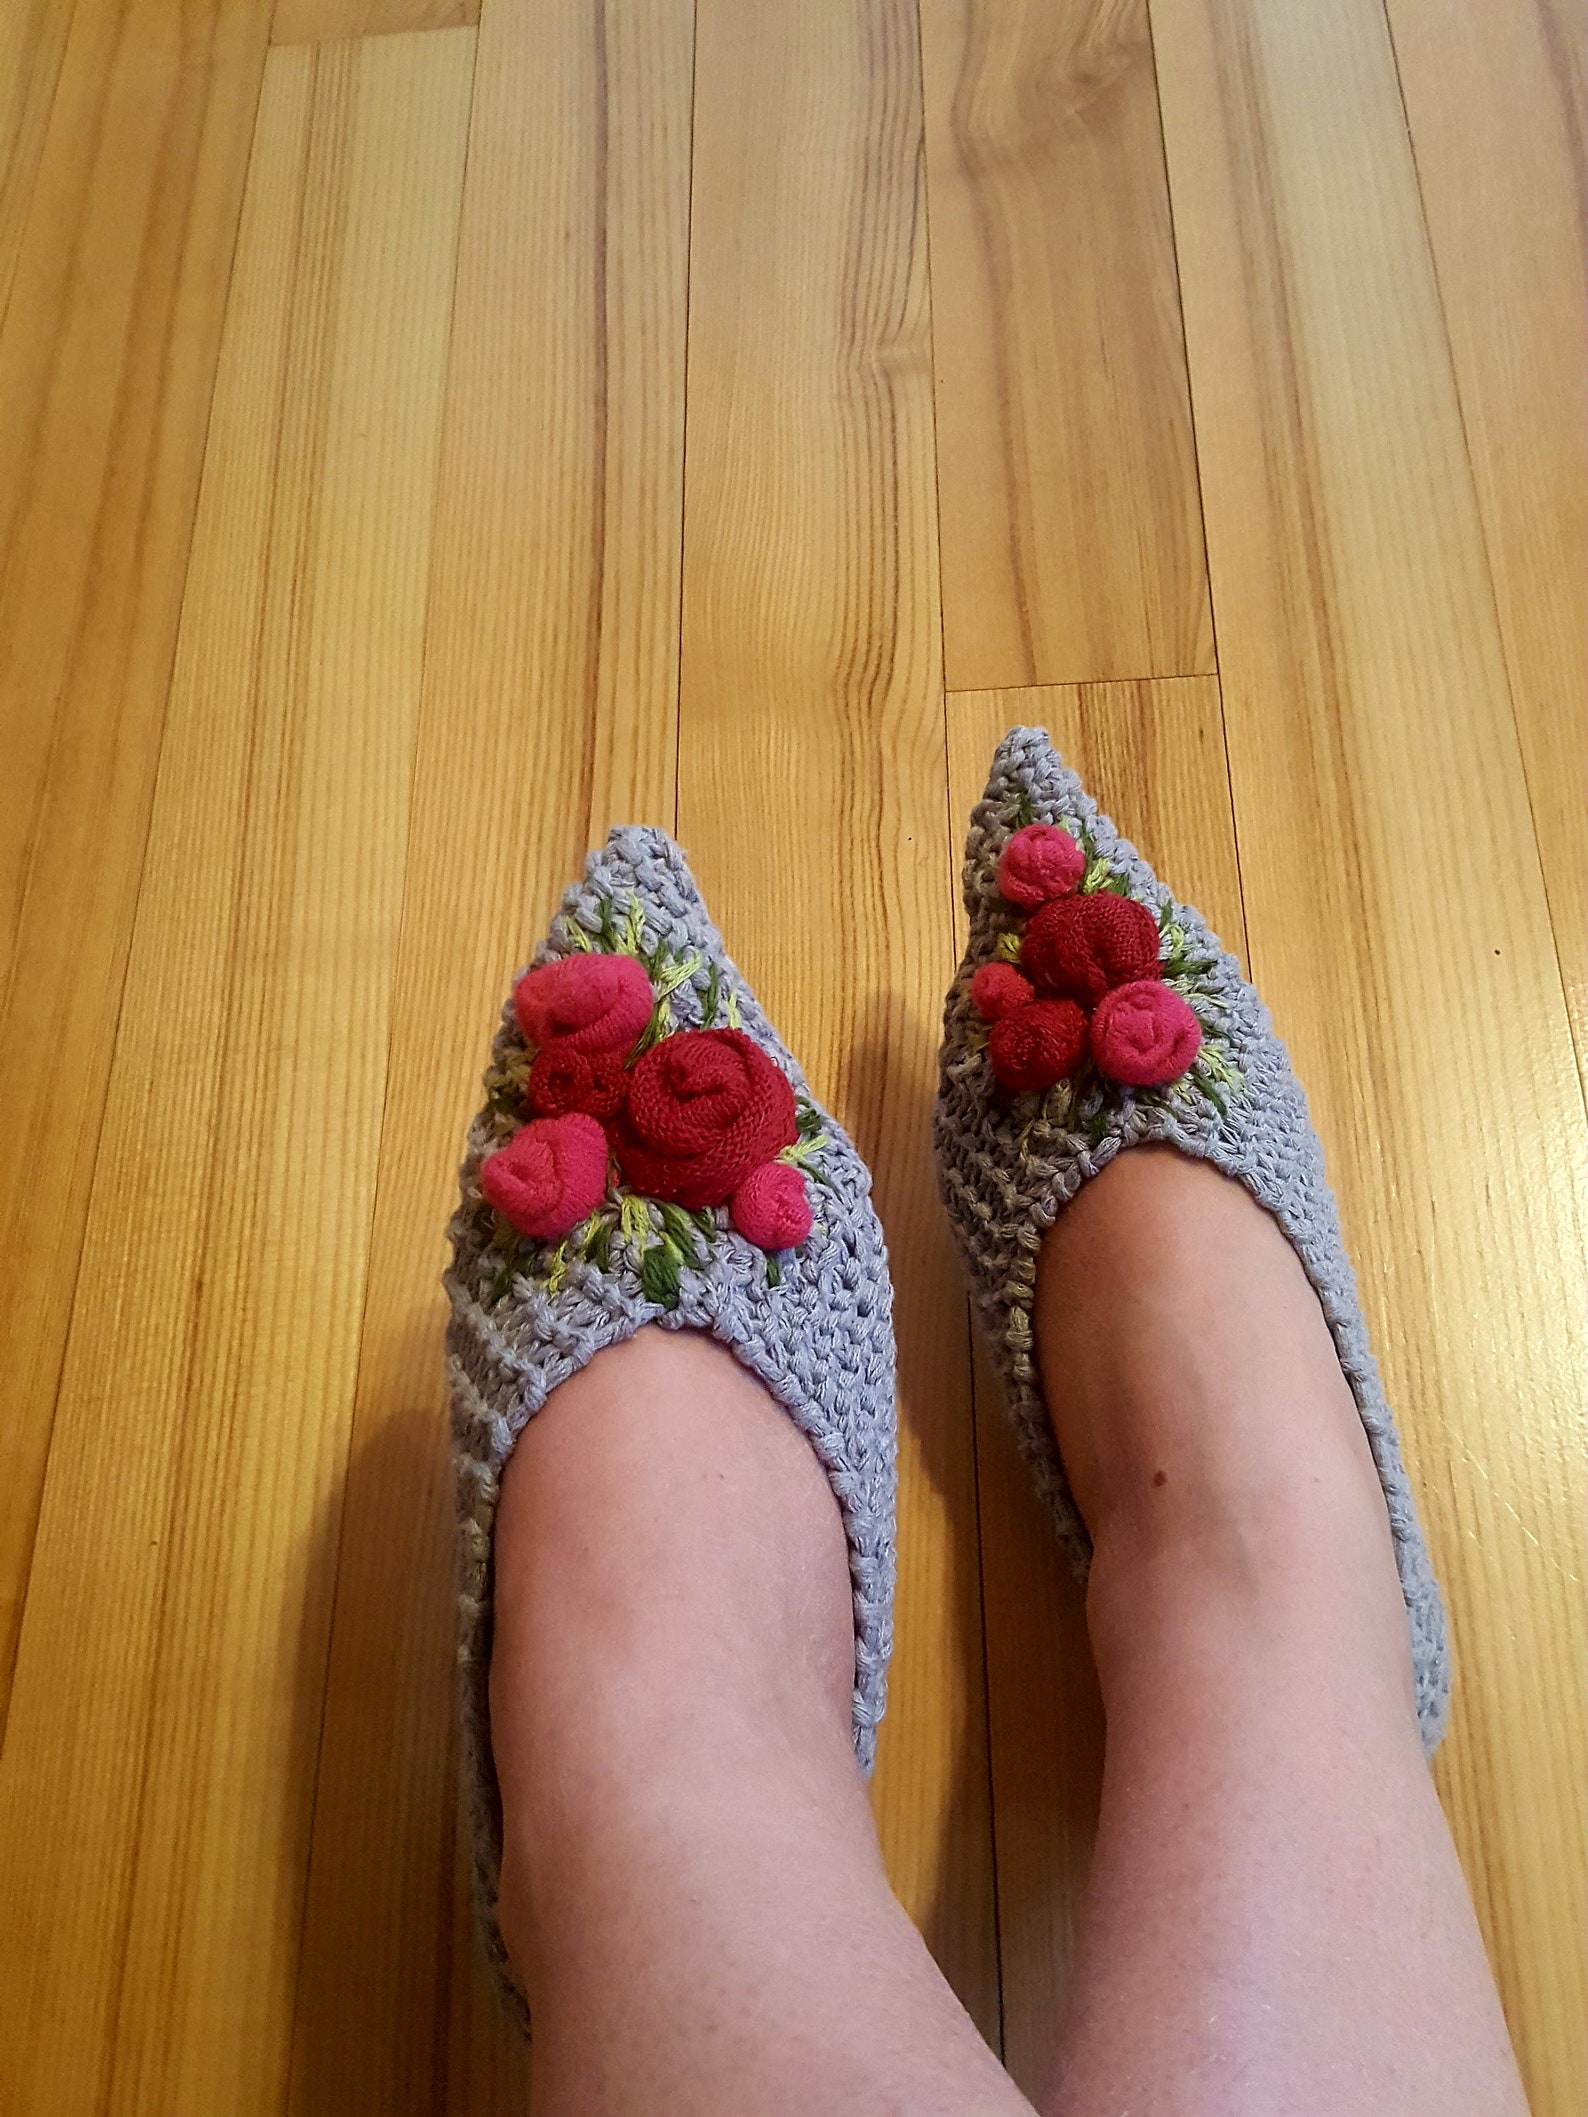 grey cotton womens slippers.hand knitted shoes.embroidered flowers.pink rose.ballet flats home shoes .boho floral inspiration.fr